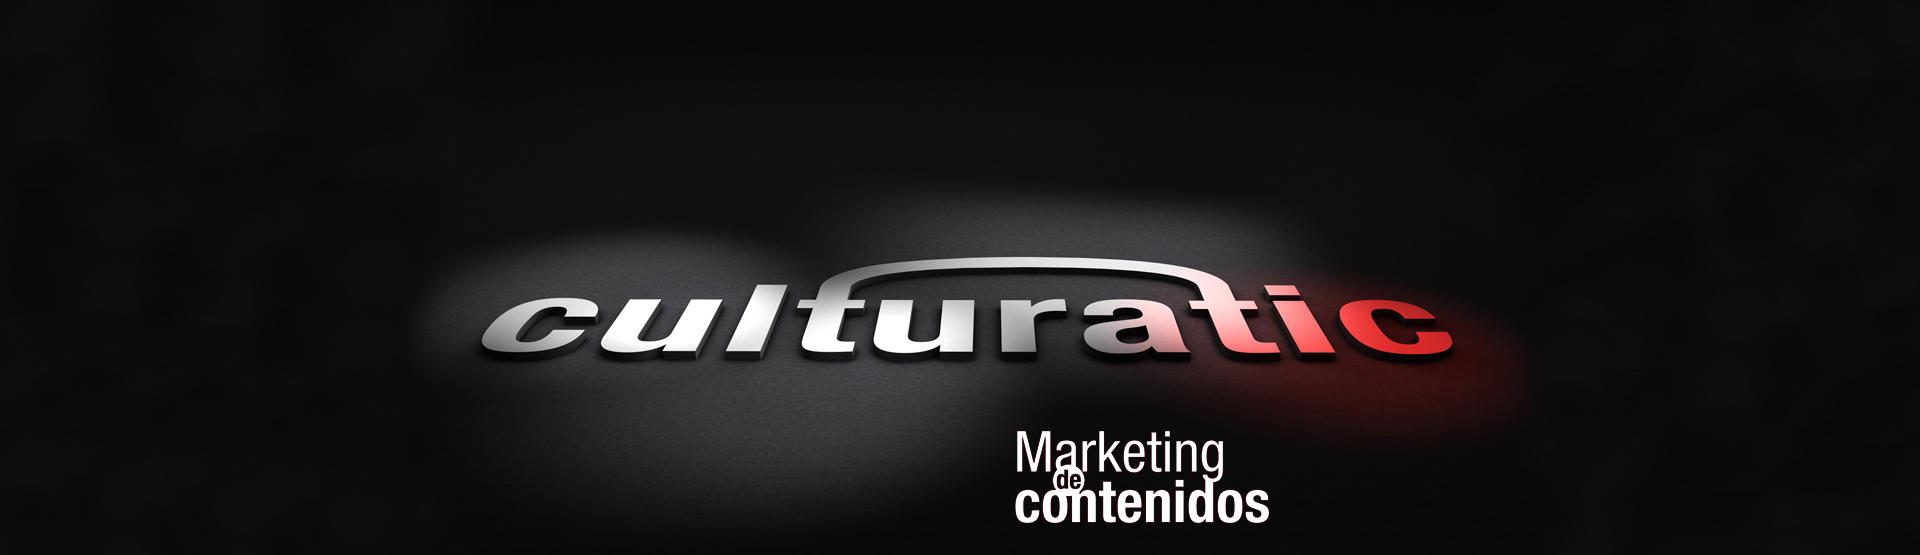 Culturatic - Marketing de Contenidos